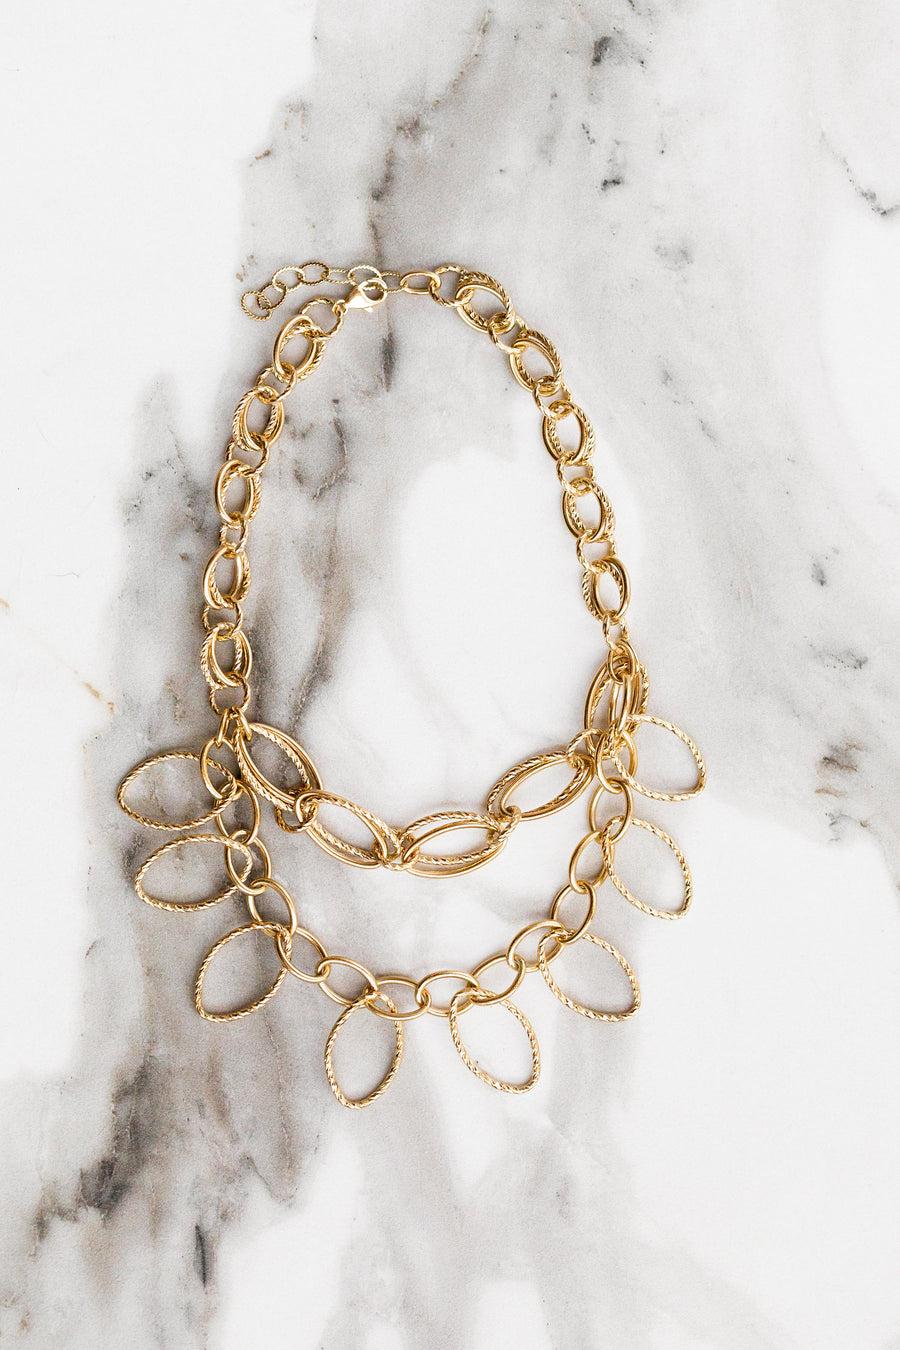 Find the perfect necklace you're looking for from Charme Silkiner! This beautiful 24K Gold + Diamond Overlay Cut Chain Necklace is seriously chic. Great for layering or wearing alone the Rianna Necklace is the perfect piece of unique jewelry that everyone should own to make a statement!